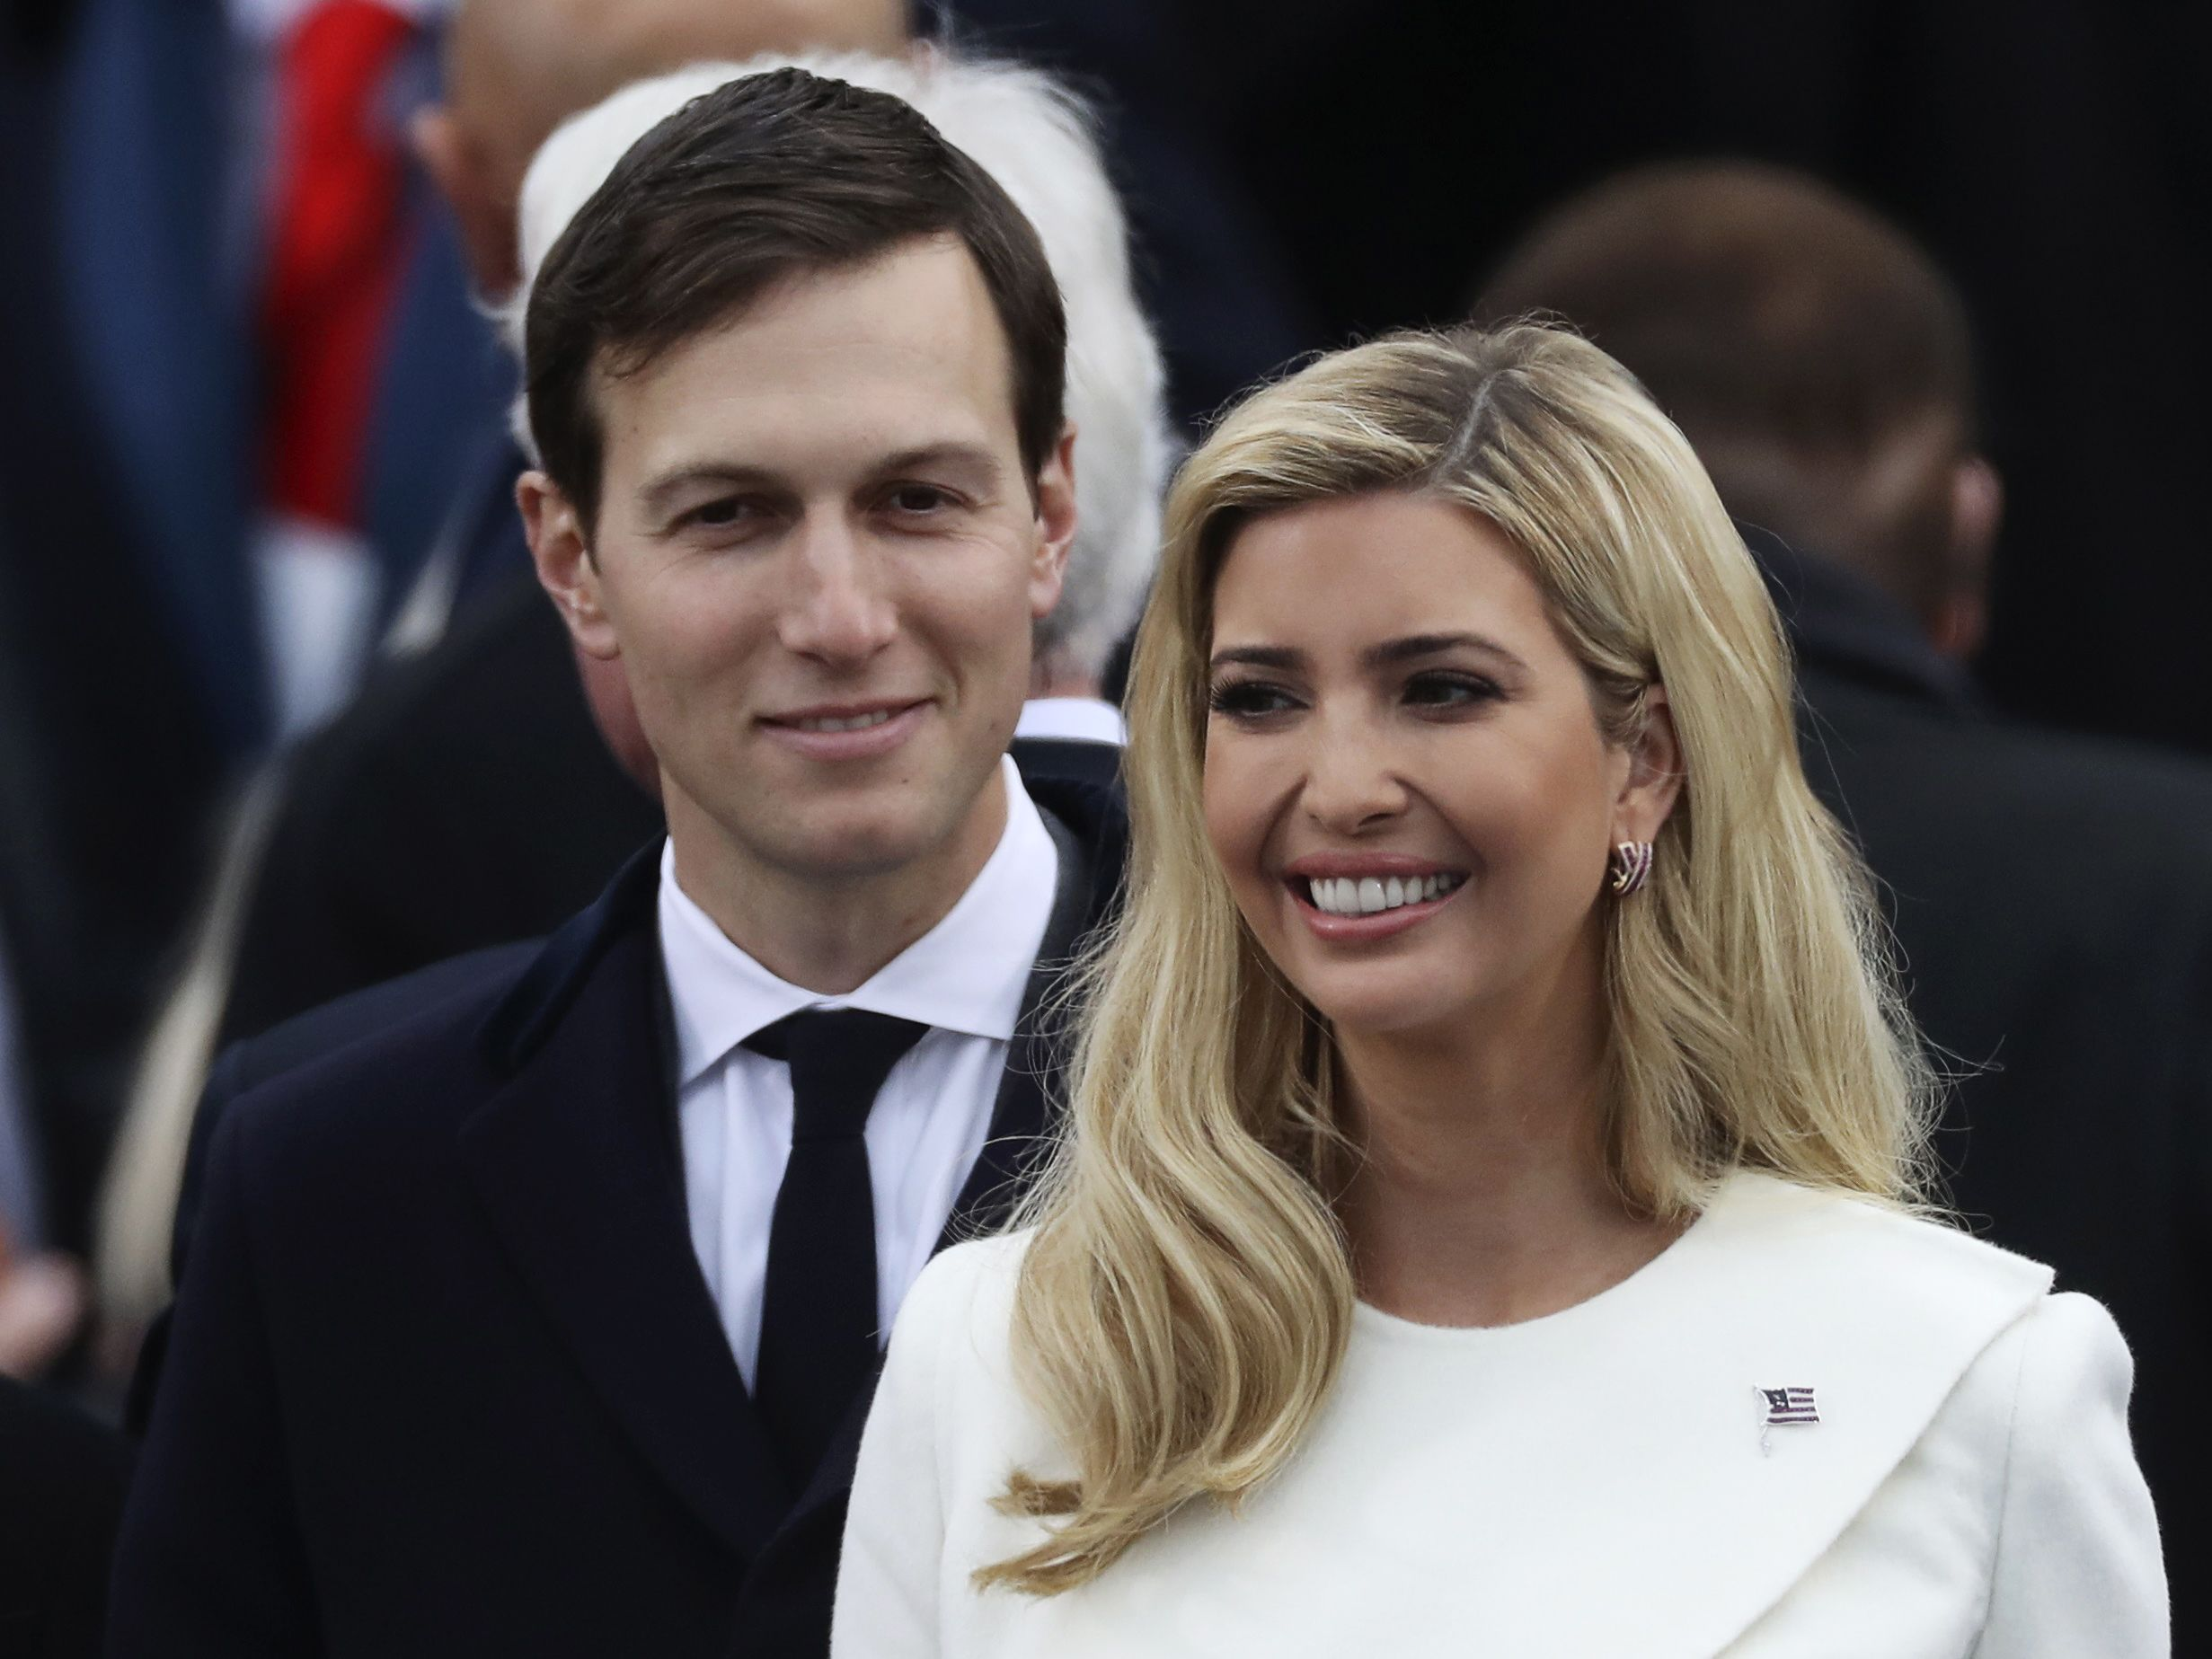 How did Jared Kushner and Ivanka Trump get so rich?